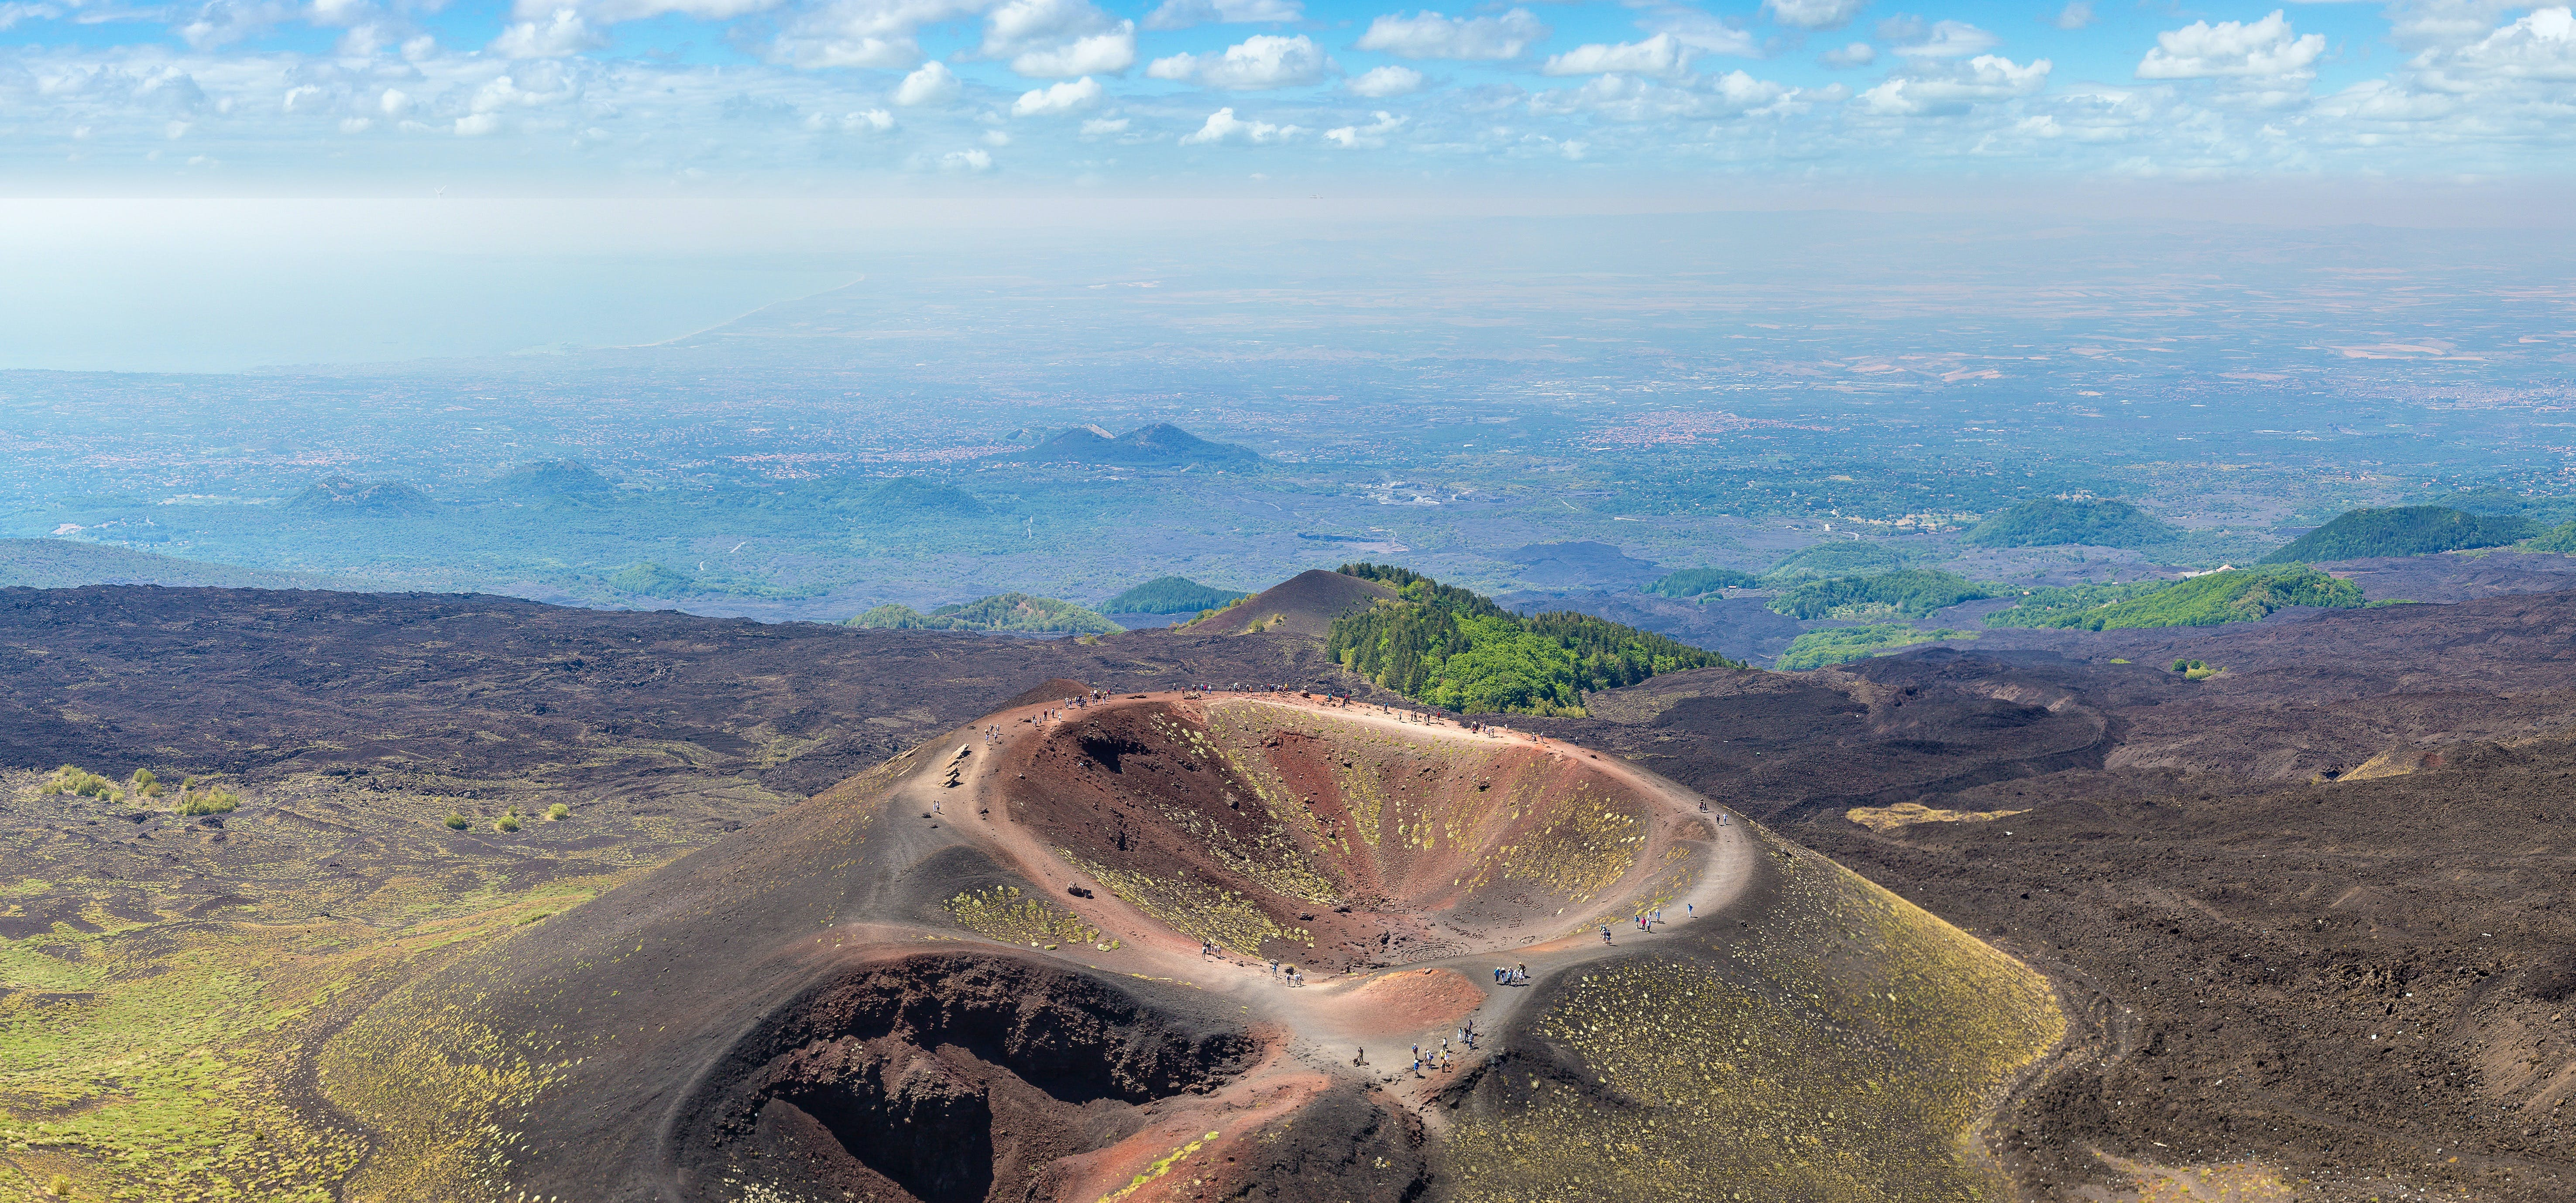 Mount Etna Tickets And Tours In Catania Musement